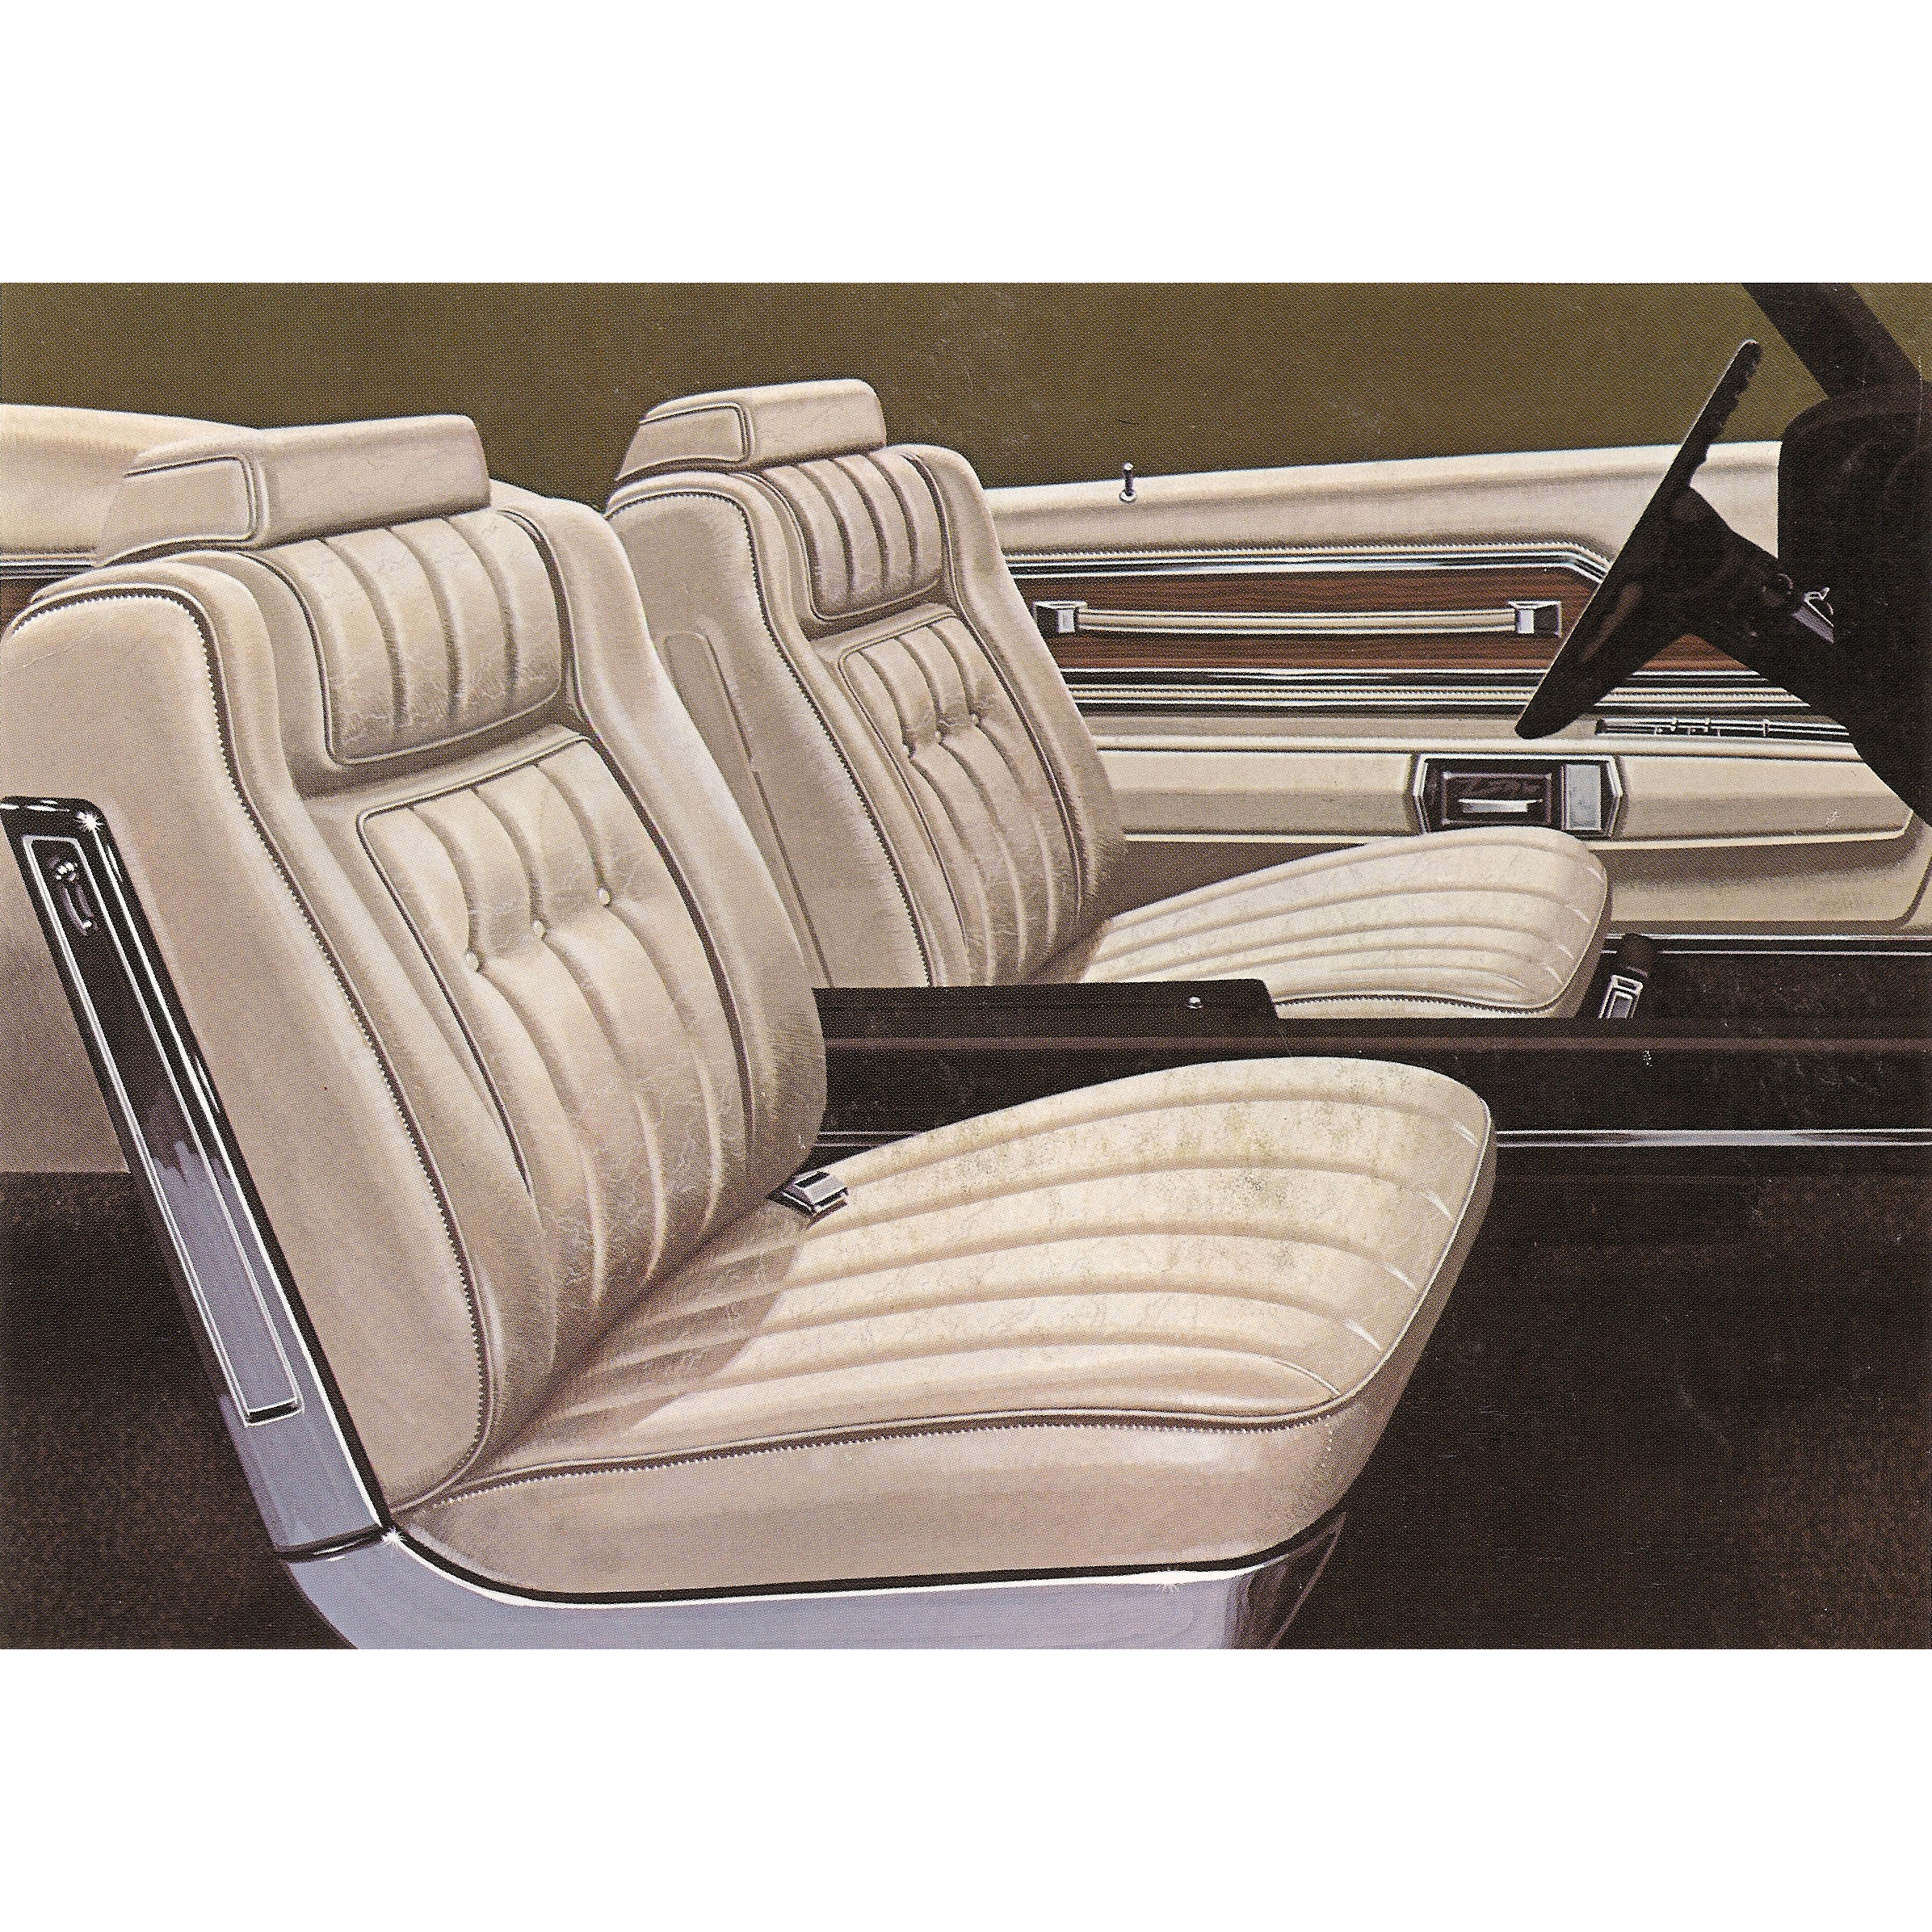 Buick Seat Covers Classic Car Interior